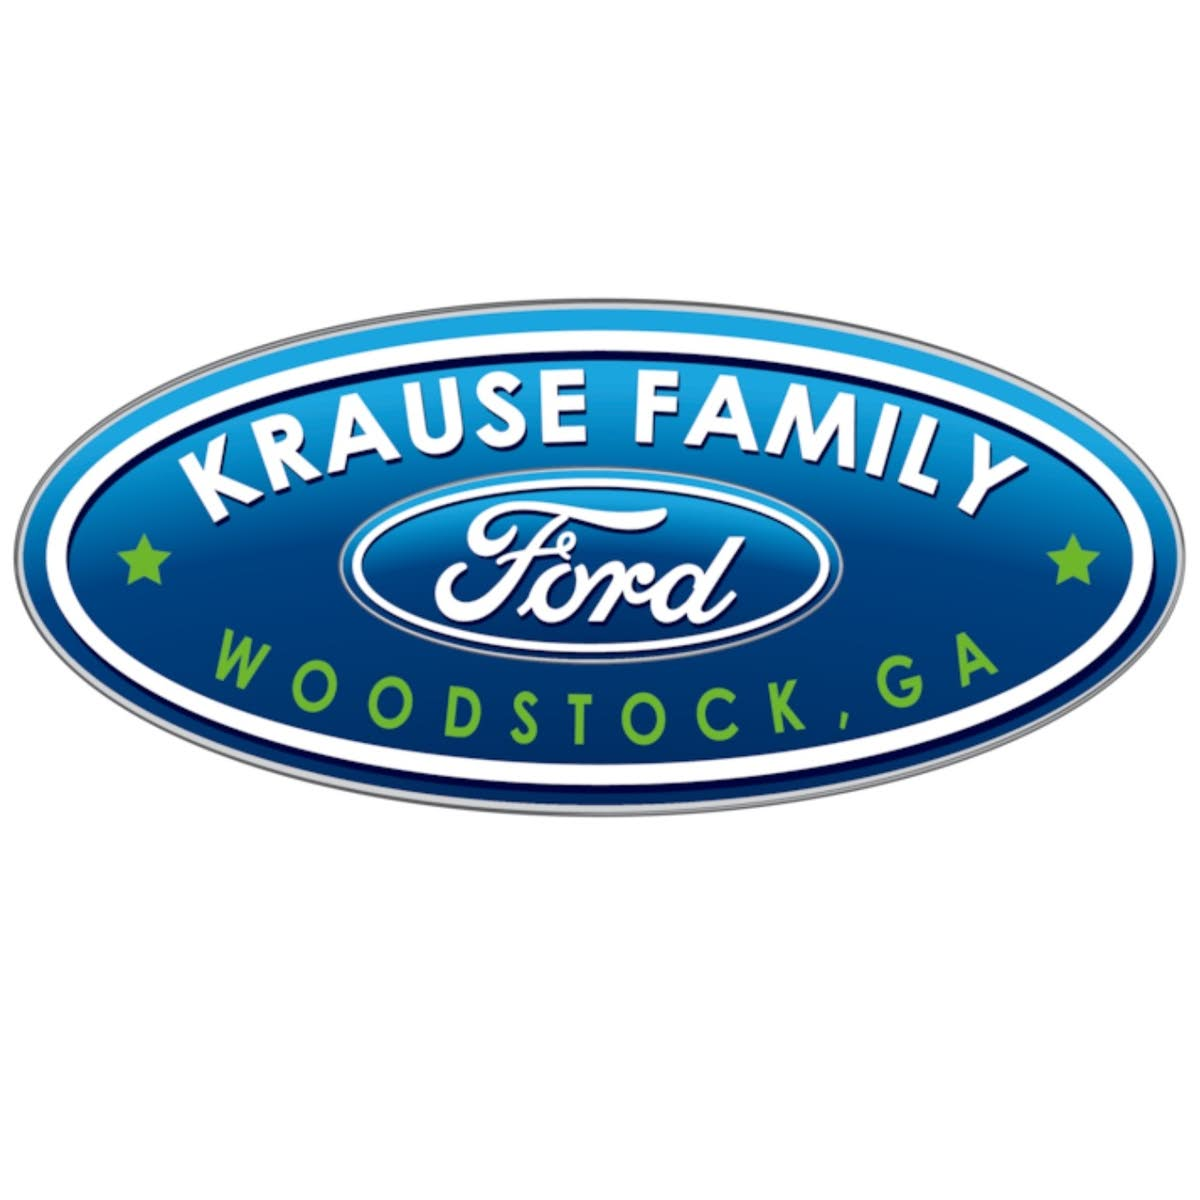 Krause Family Ford Of Woodstock